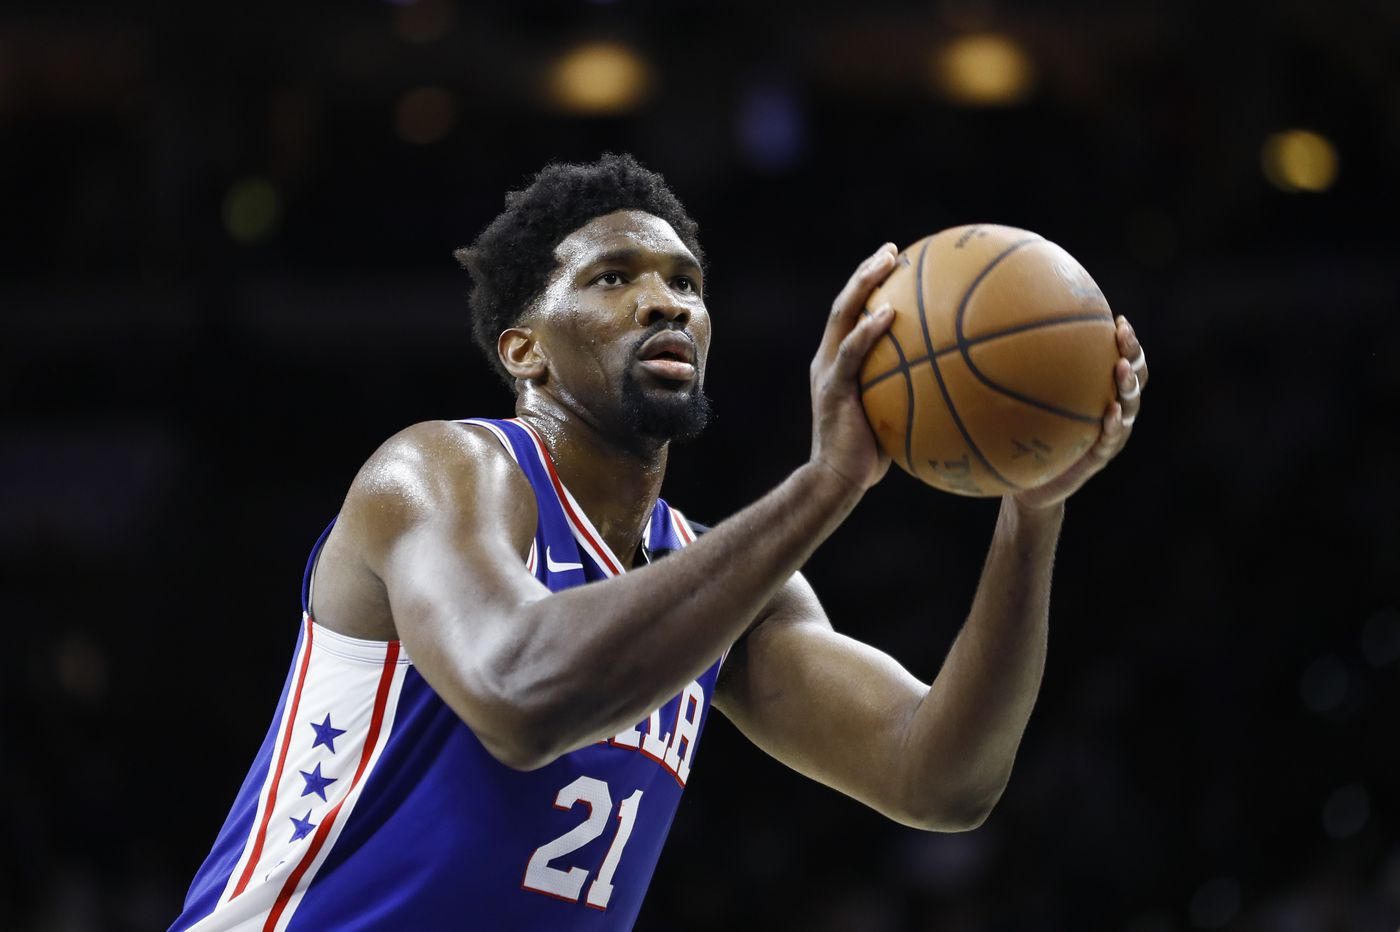 Sixers' Joel Embiid misses second straight scrimmage with right calf tightness